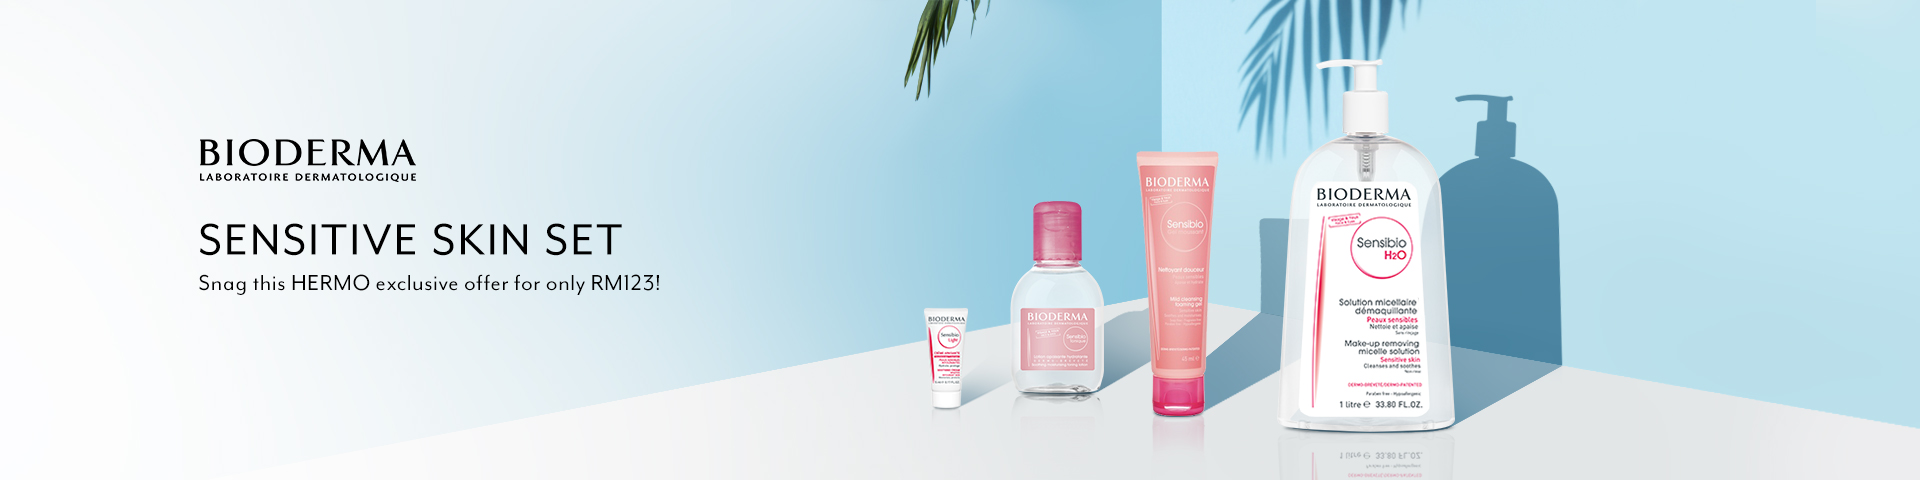 Feb 2019: Bioderma